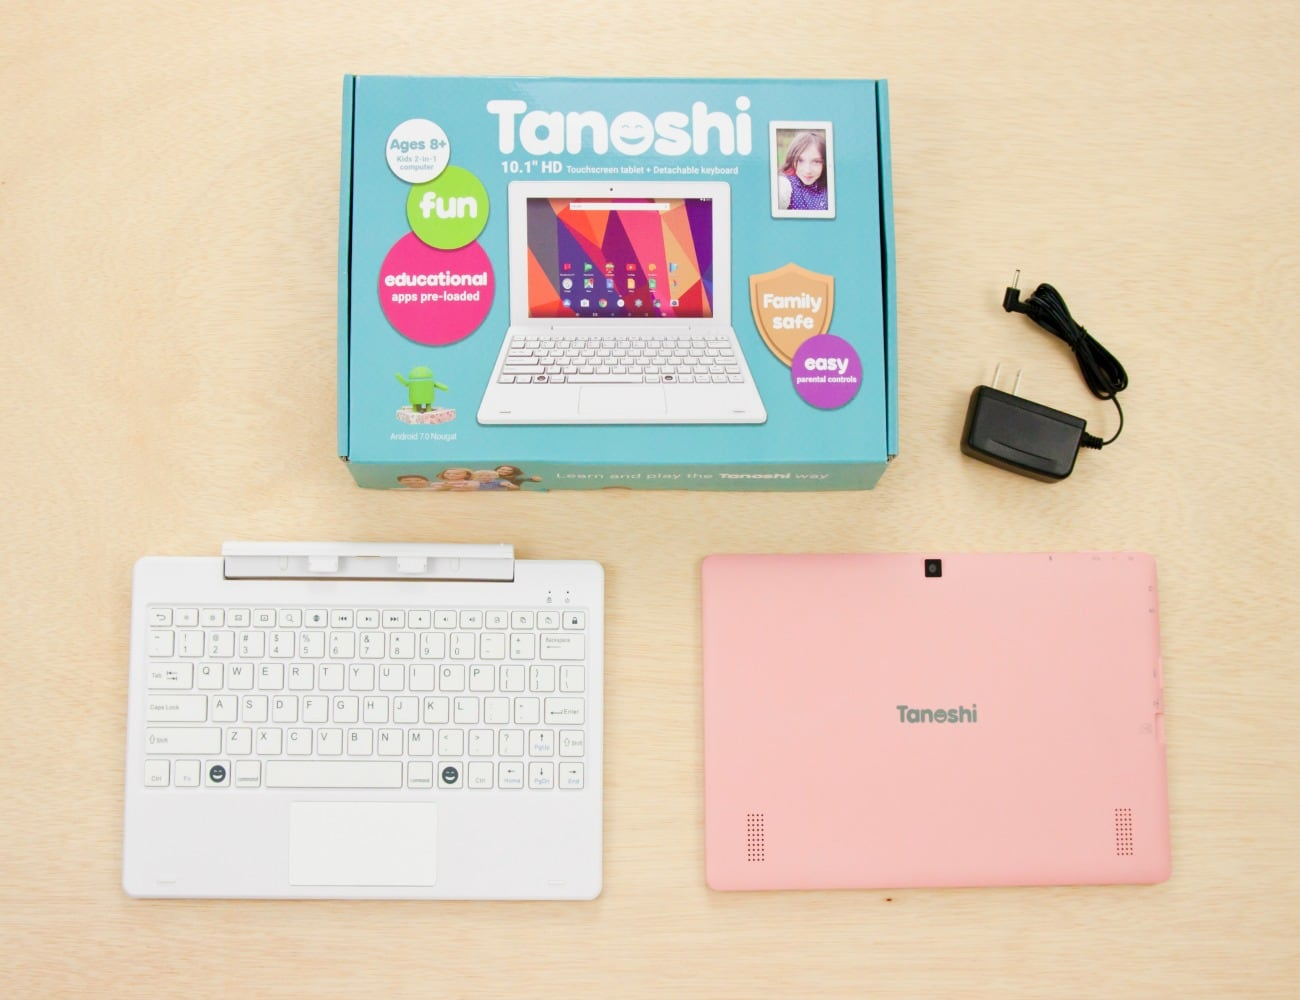 Tanoshi 2-in-1 Computer for Kids Ages 6-12